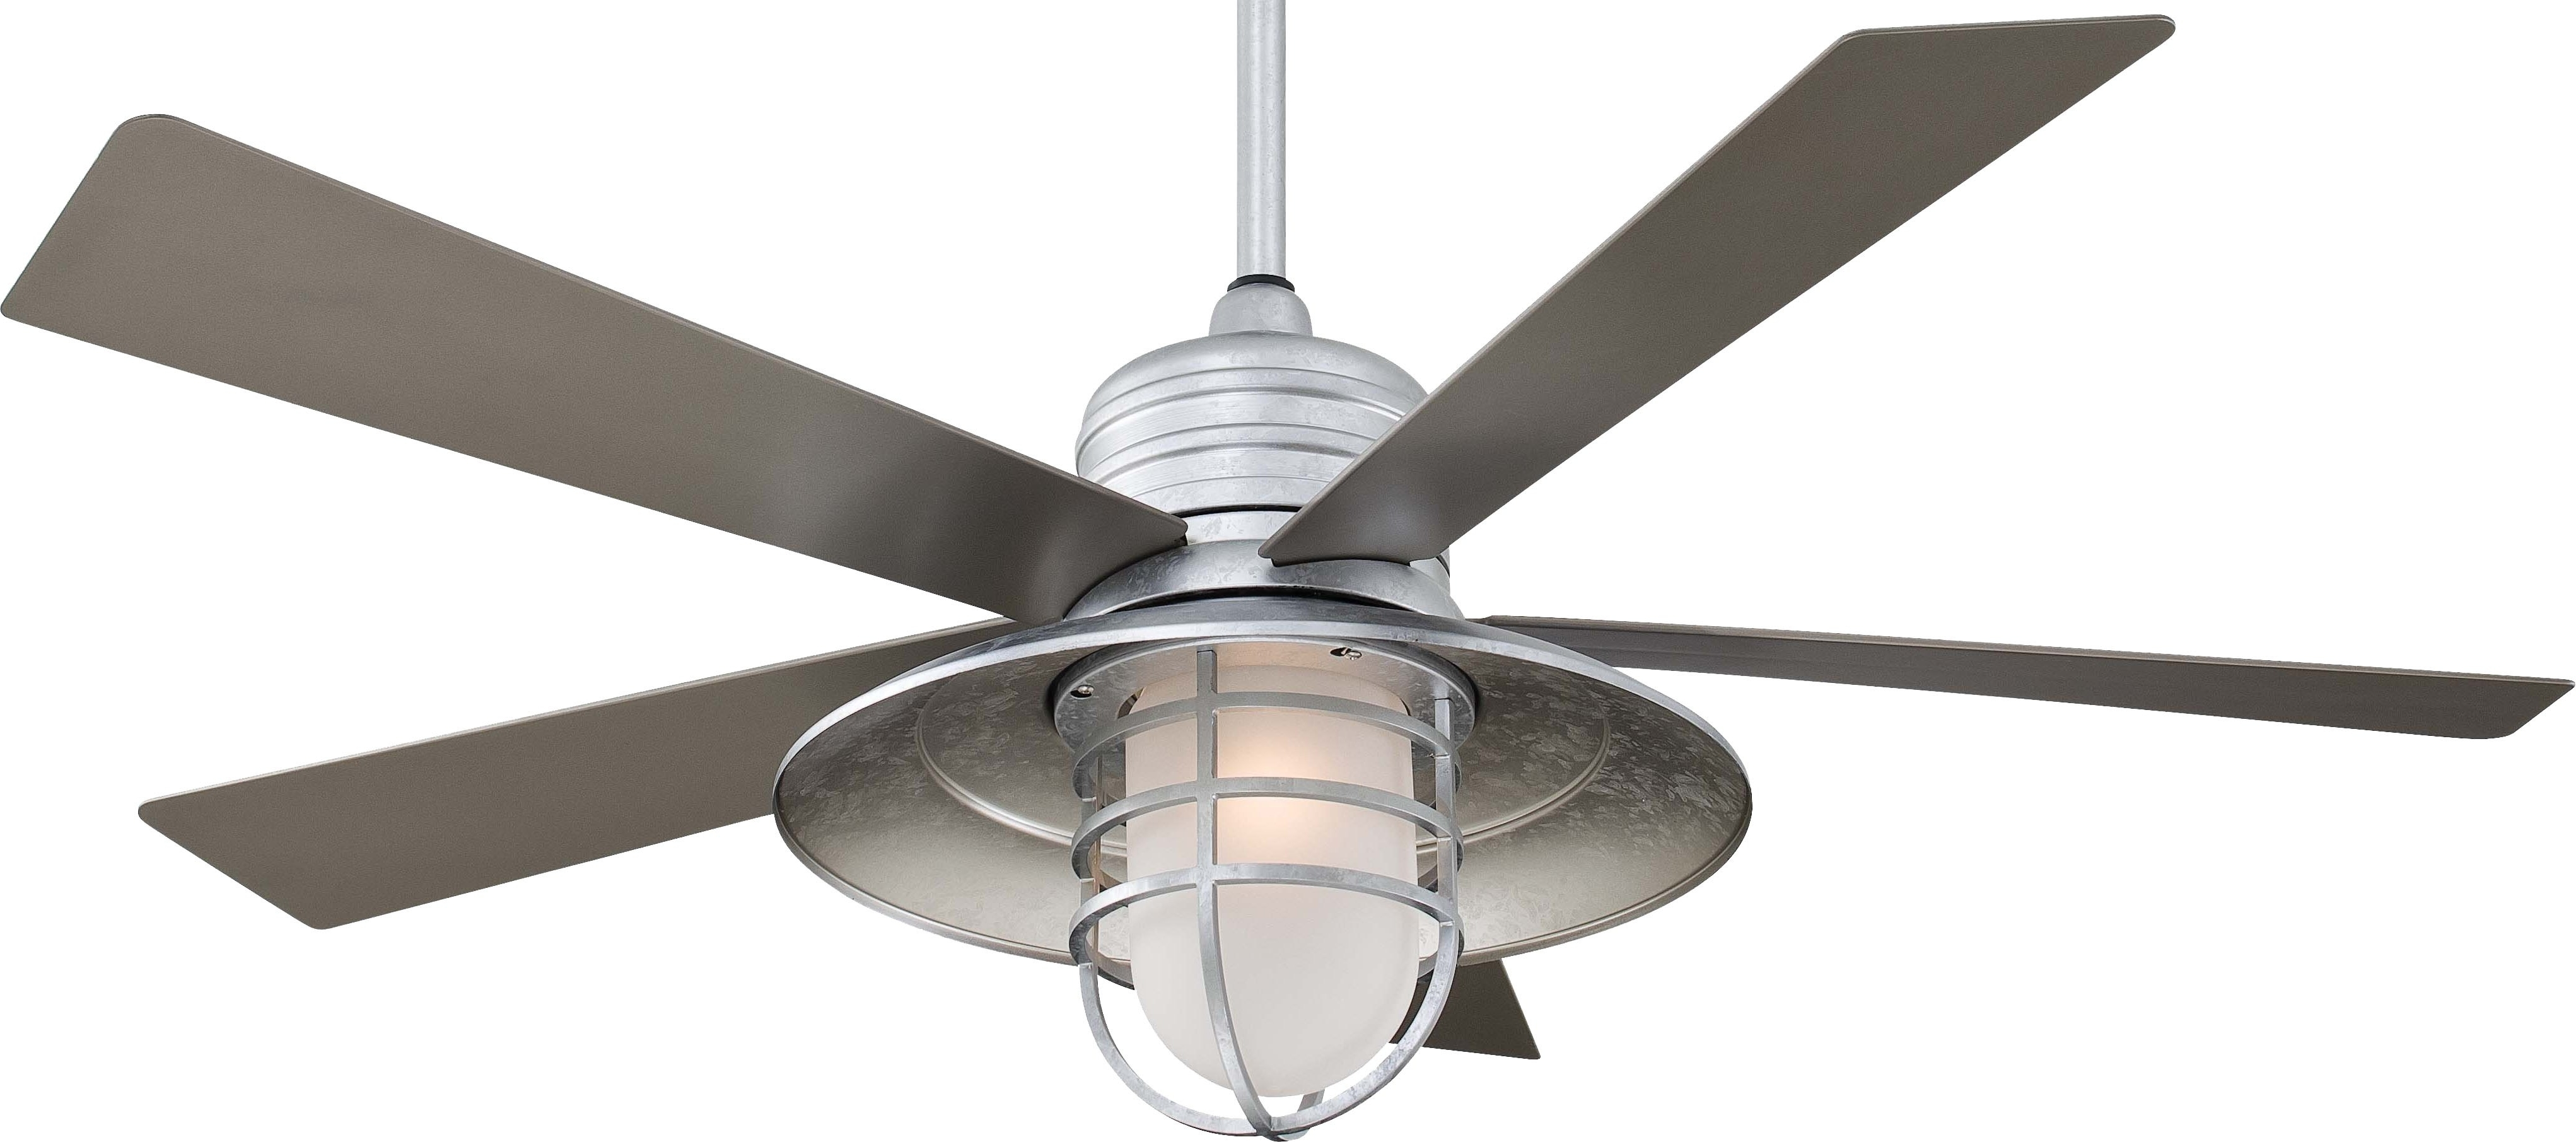 Most Recent Diverting Light Outdoor Ceiling Fans Page Fan City Together With With Regard To Industrial Outdoor Ceiling Fans (View 4 of 20)